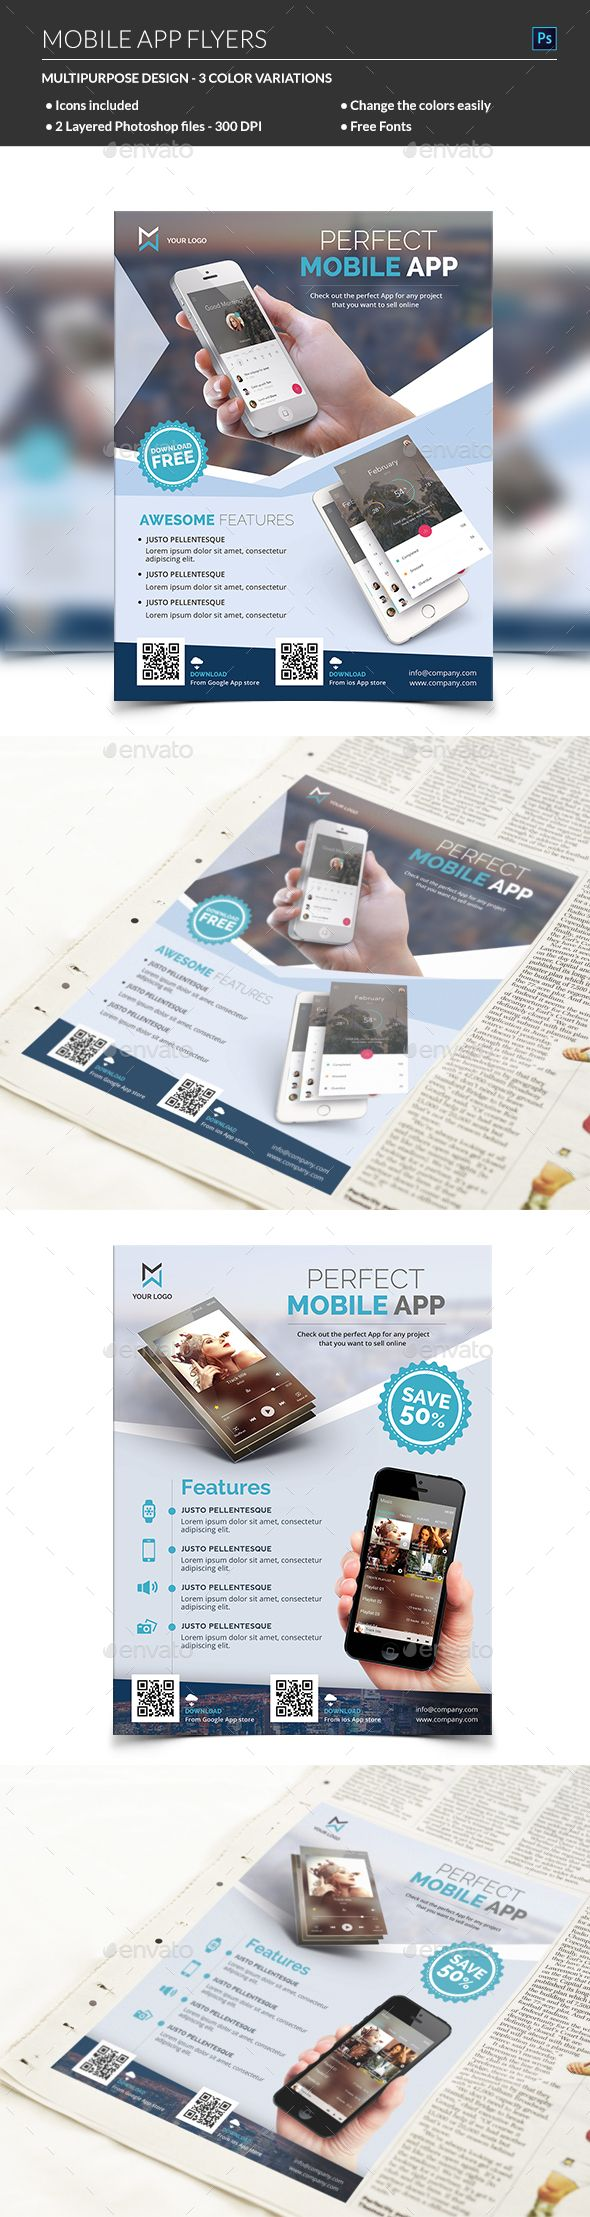 Mobile App Flyer Mobile Application Promotion Flyer Template. This Mobile app flyer is perfectly suitable for promoting your mobile application, android app, ios app or any other application software. You can also use this template in any multipurpose print advertising campaign like newspaper ad or magazine ad.